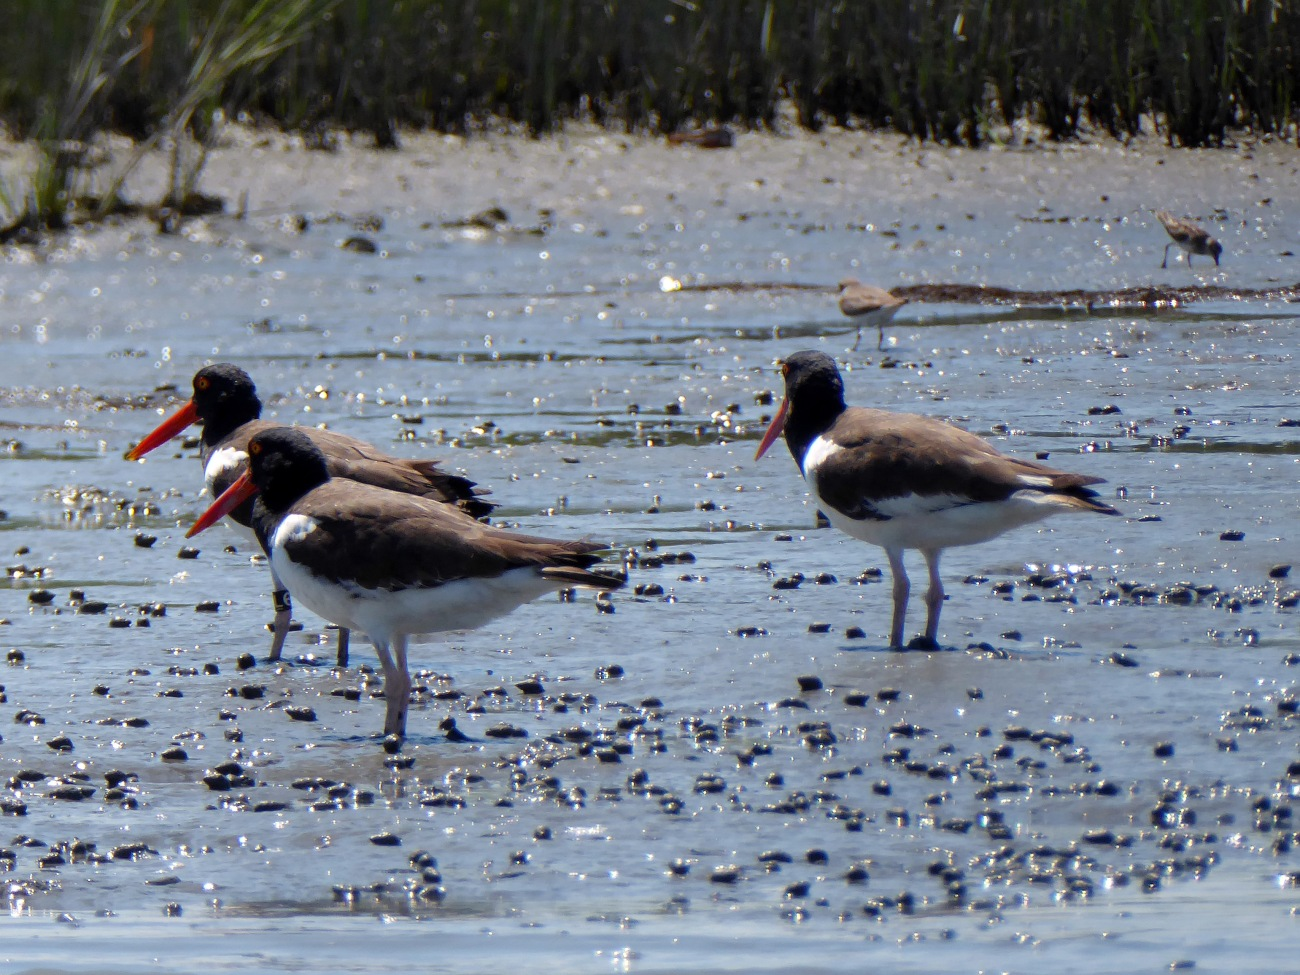 20170806_141249_American Oystercatchers - Copy